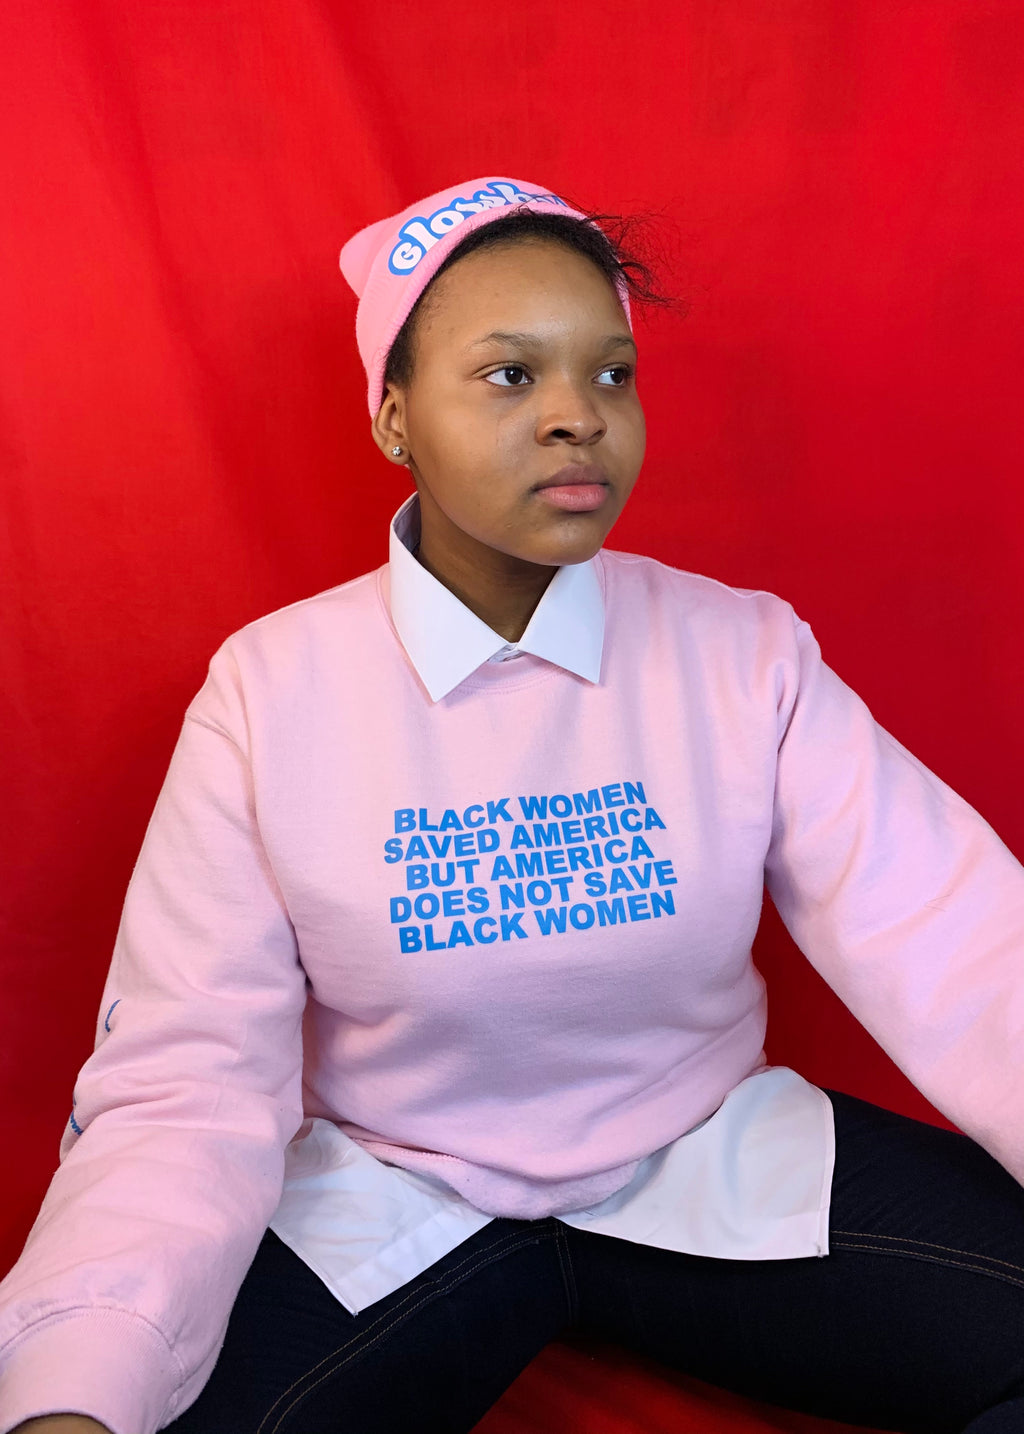 Black Women Saved America Crewneck